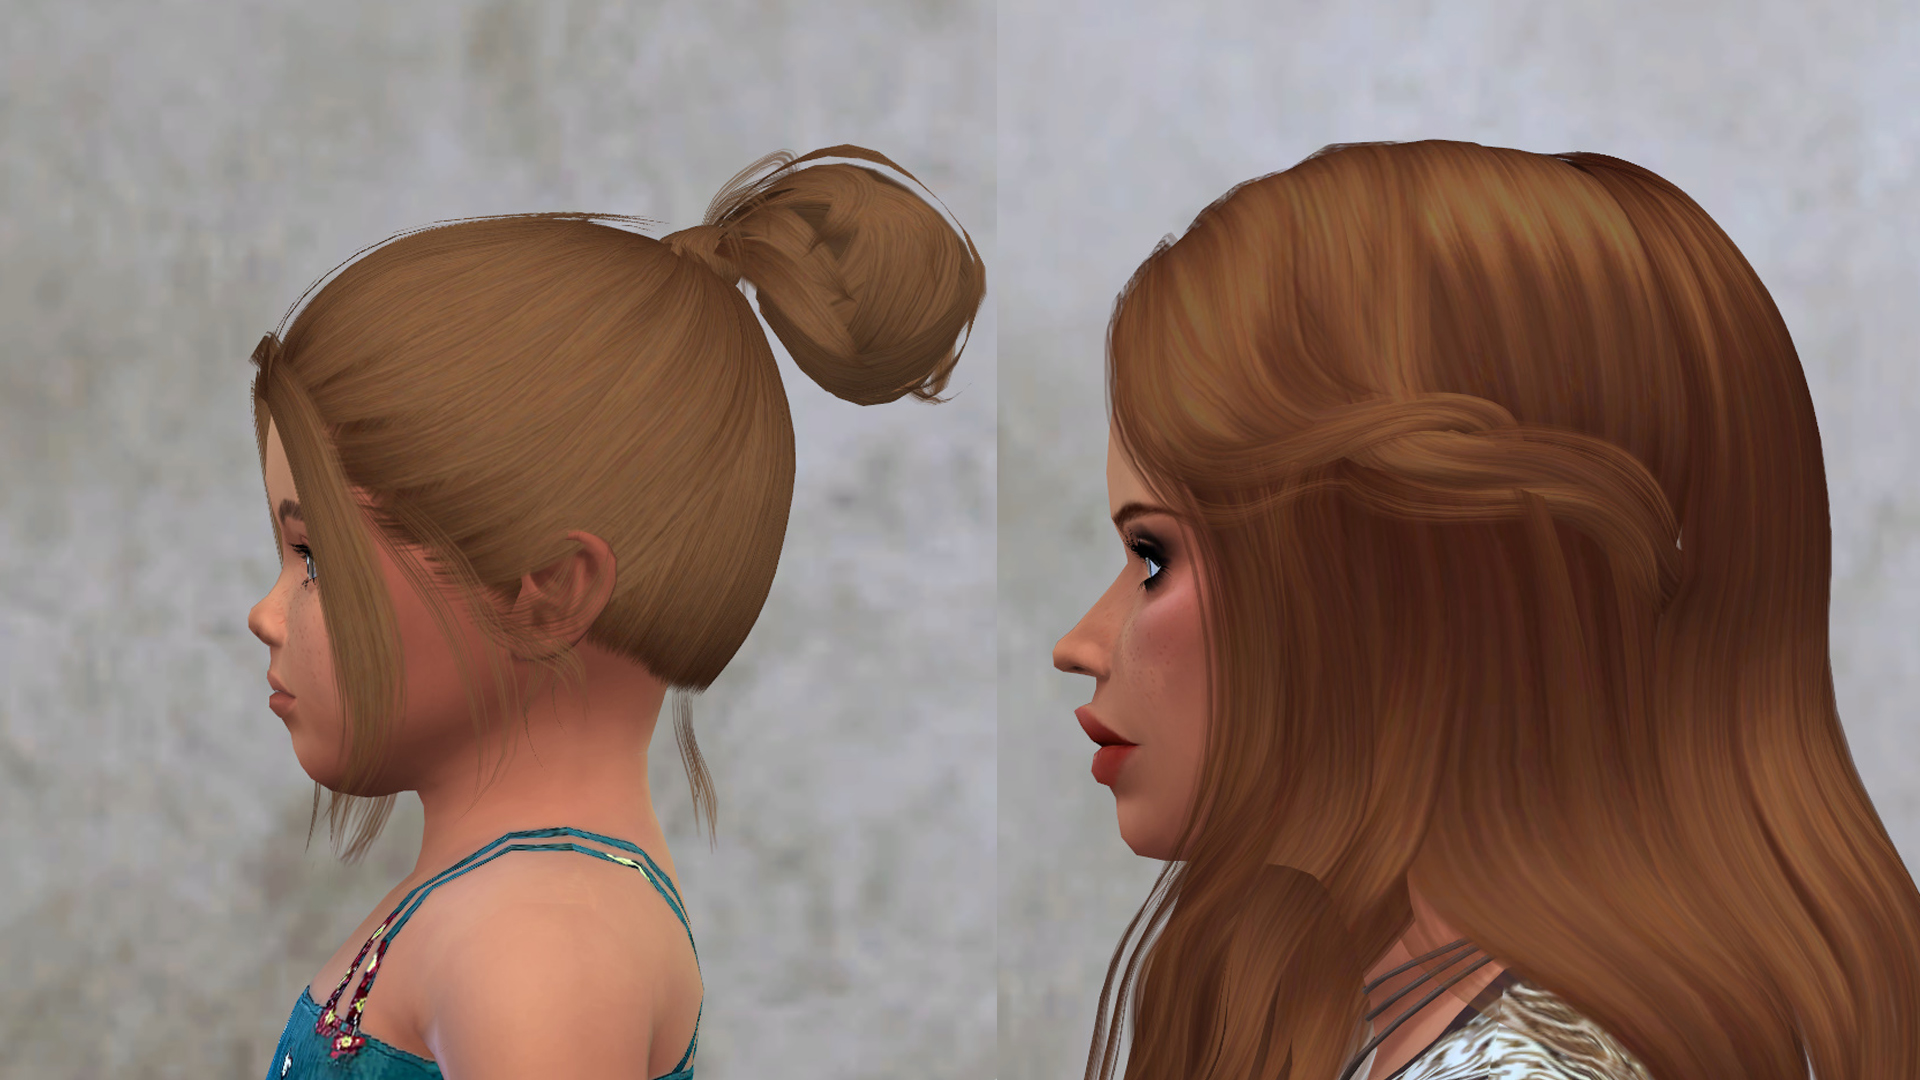 sims 4 toddler to adult challenge 3.jpg